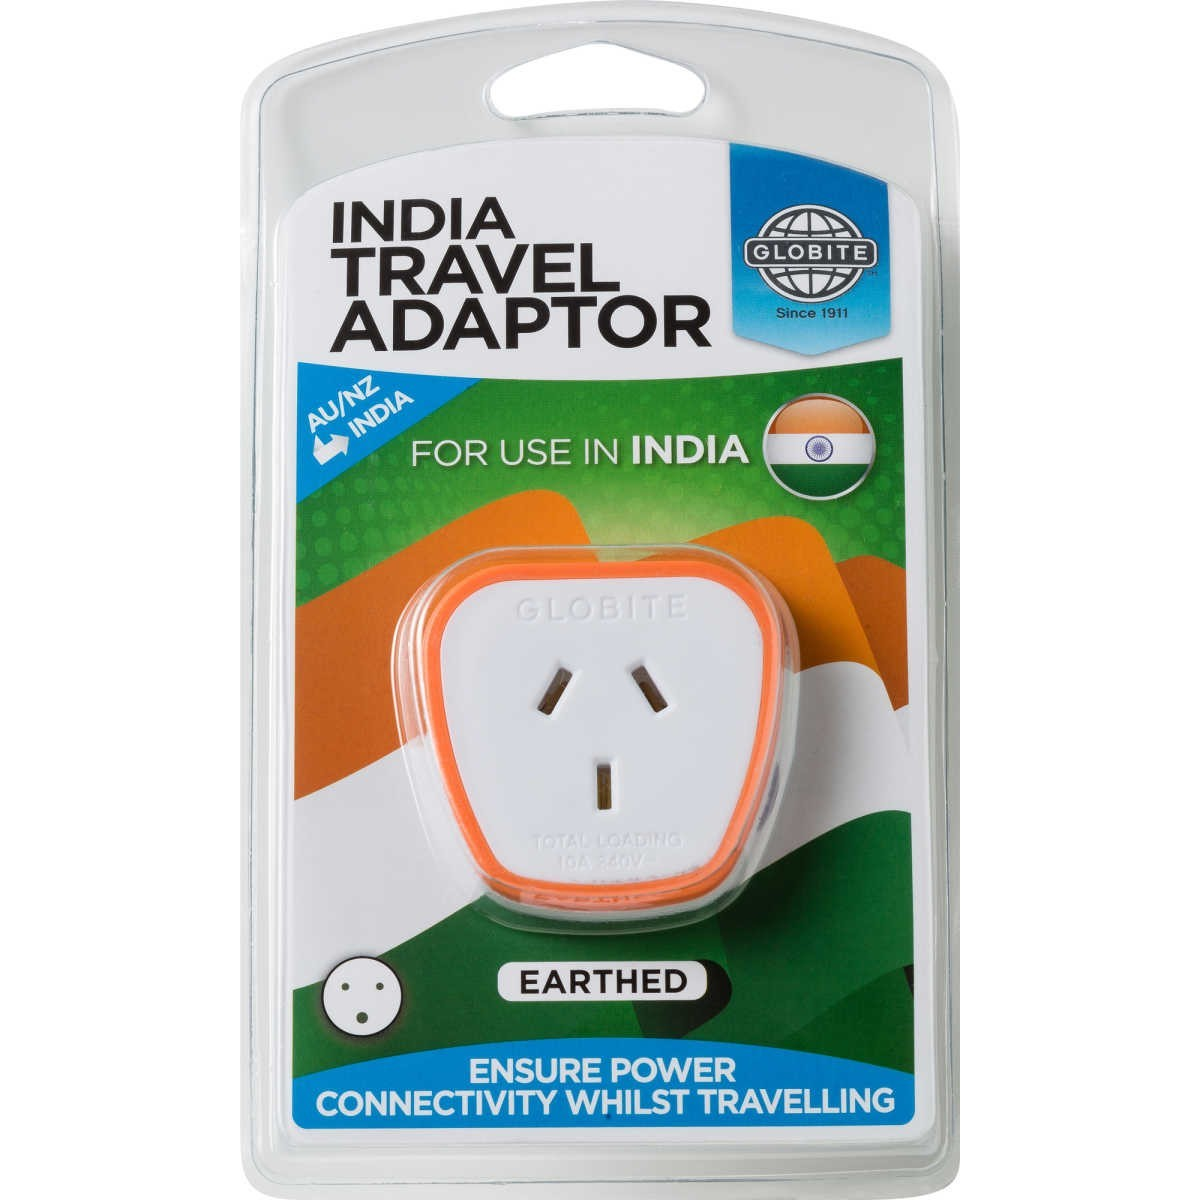 Coles Travel Adaptor Globite India Travel Adaptor